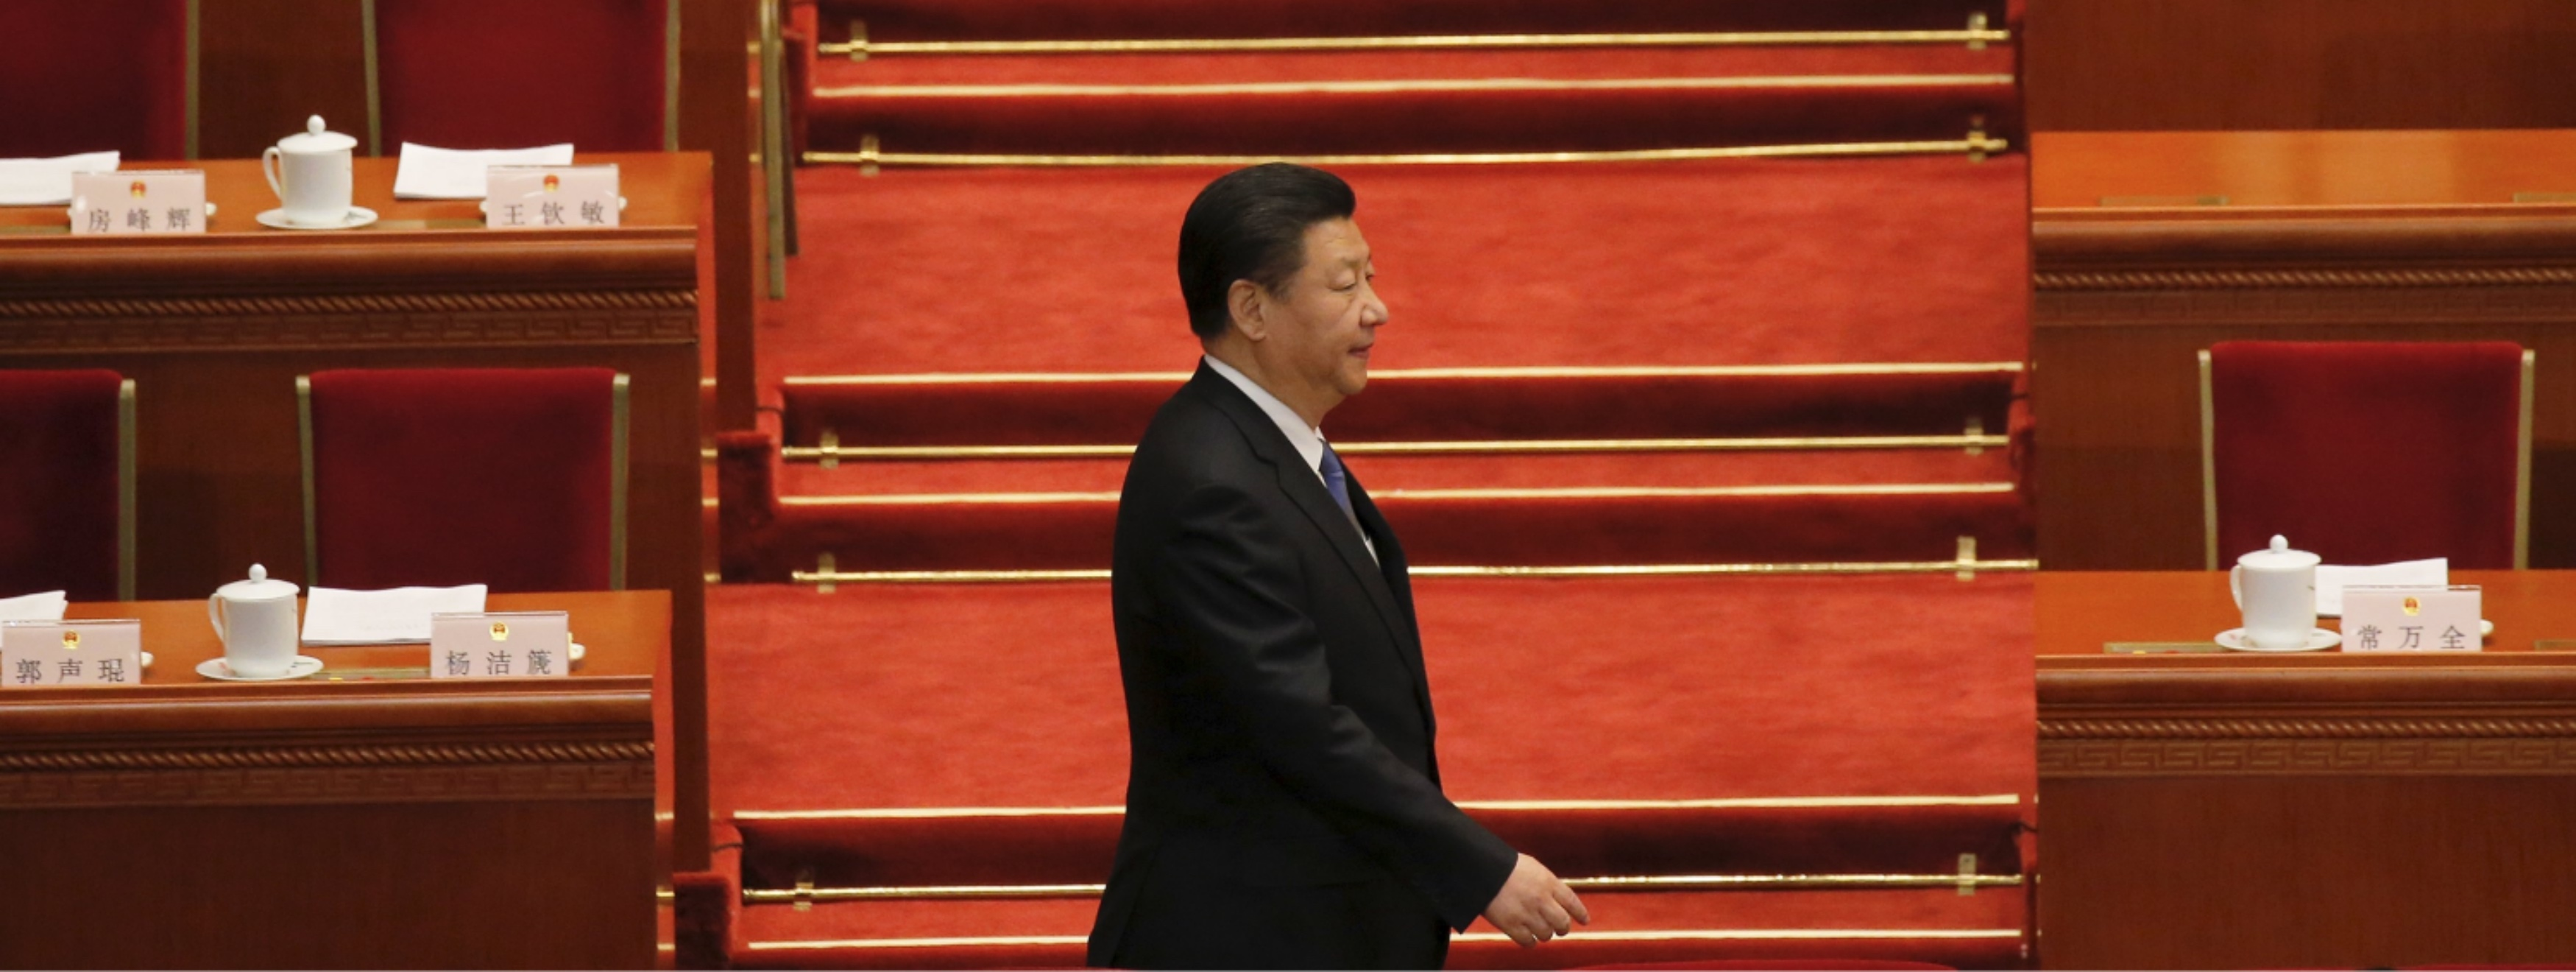 What the Latest Session of China's Parliament Tells Us About the Challenges Xi Confronts